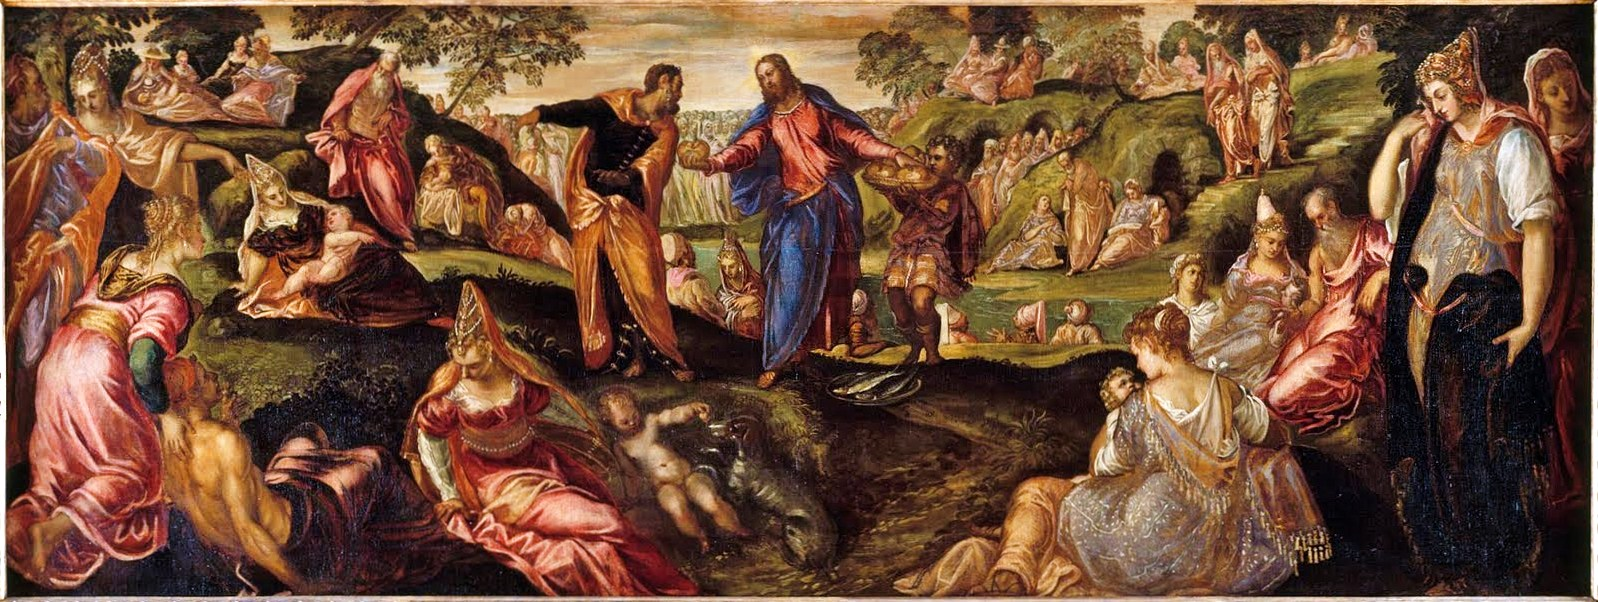 The Miracles of the Loaves and Fish. Tintoretto 1547